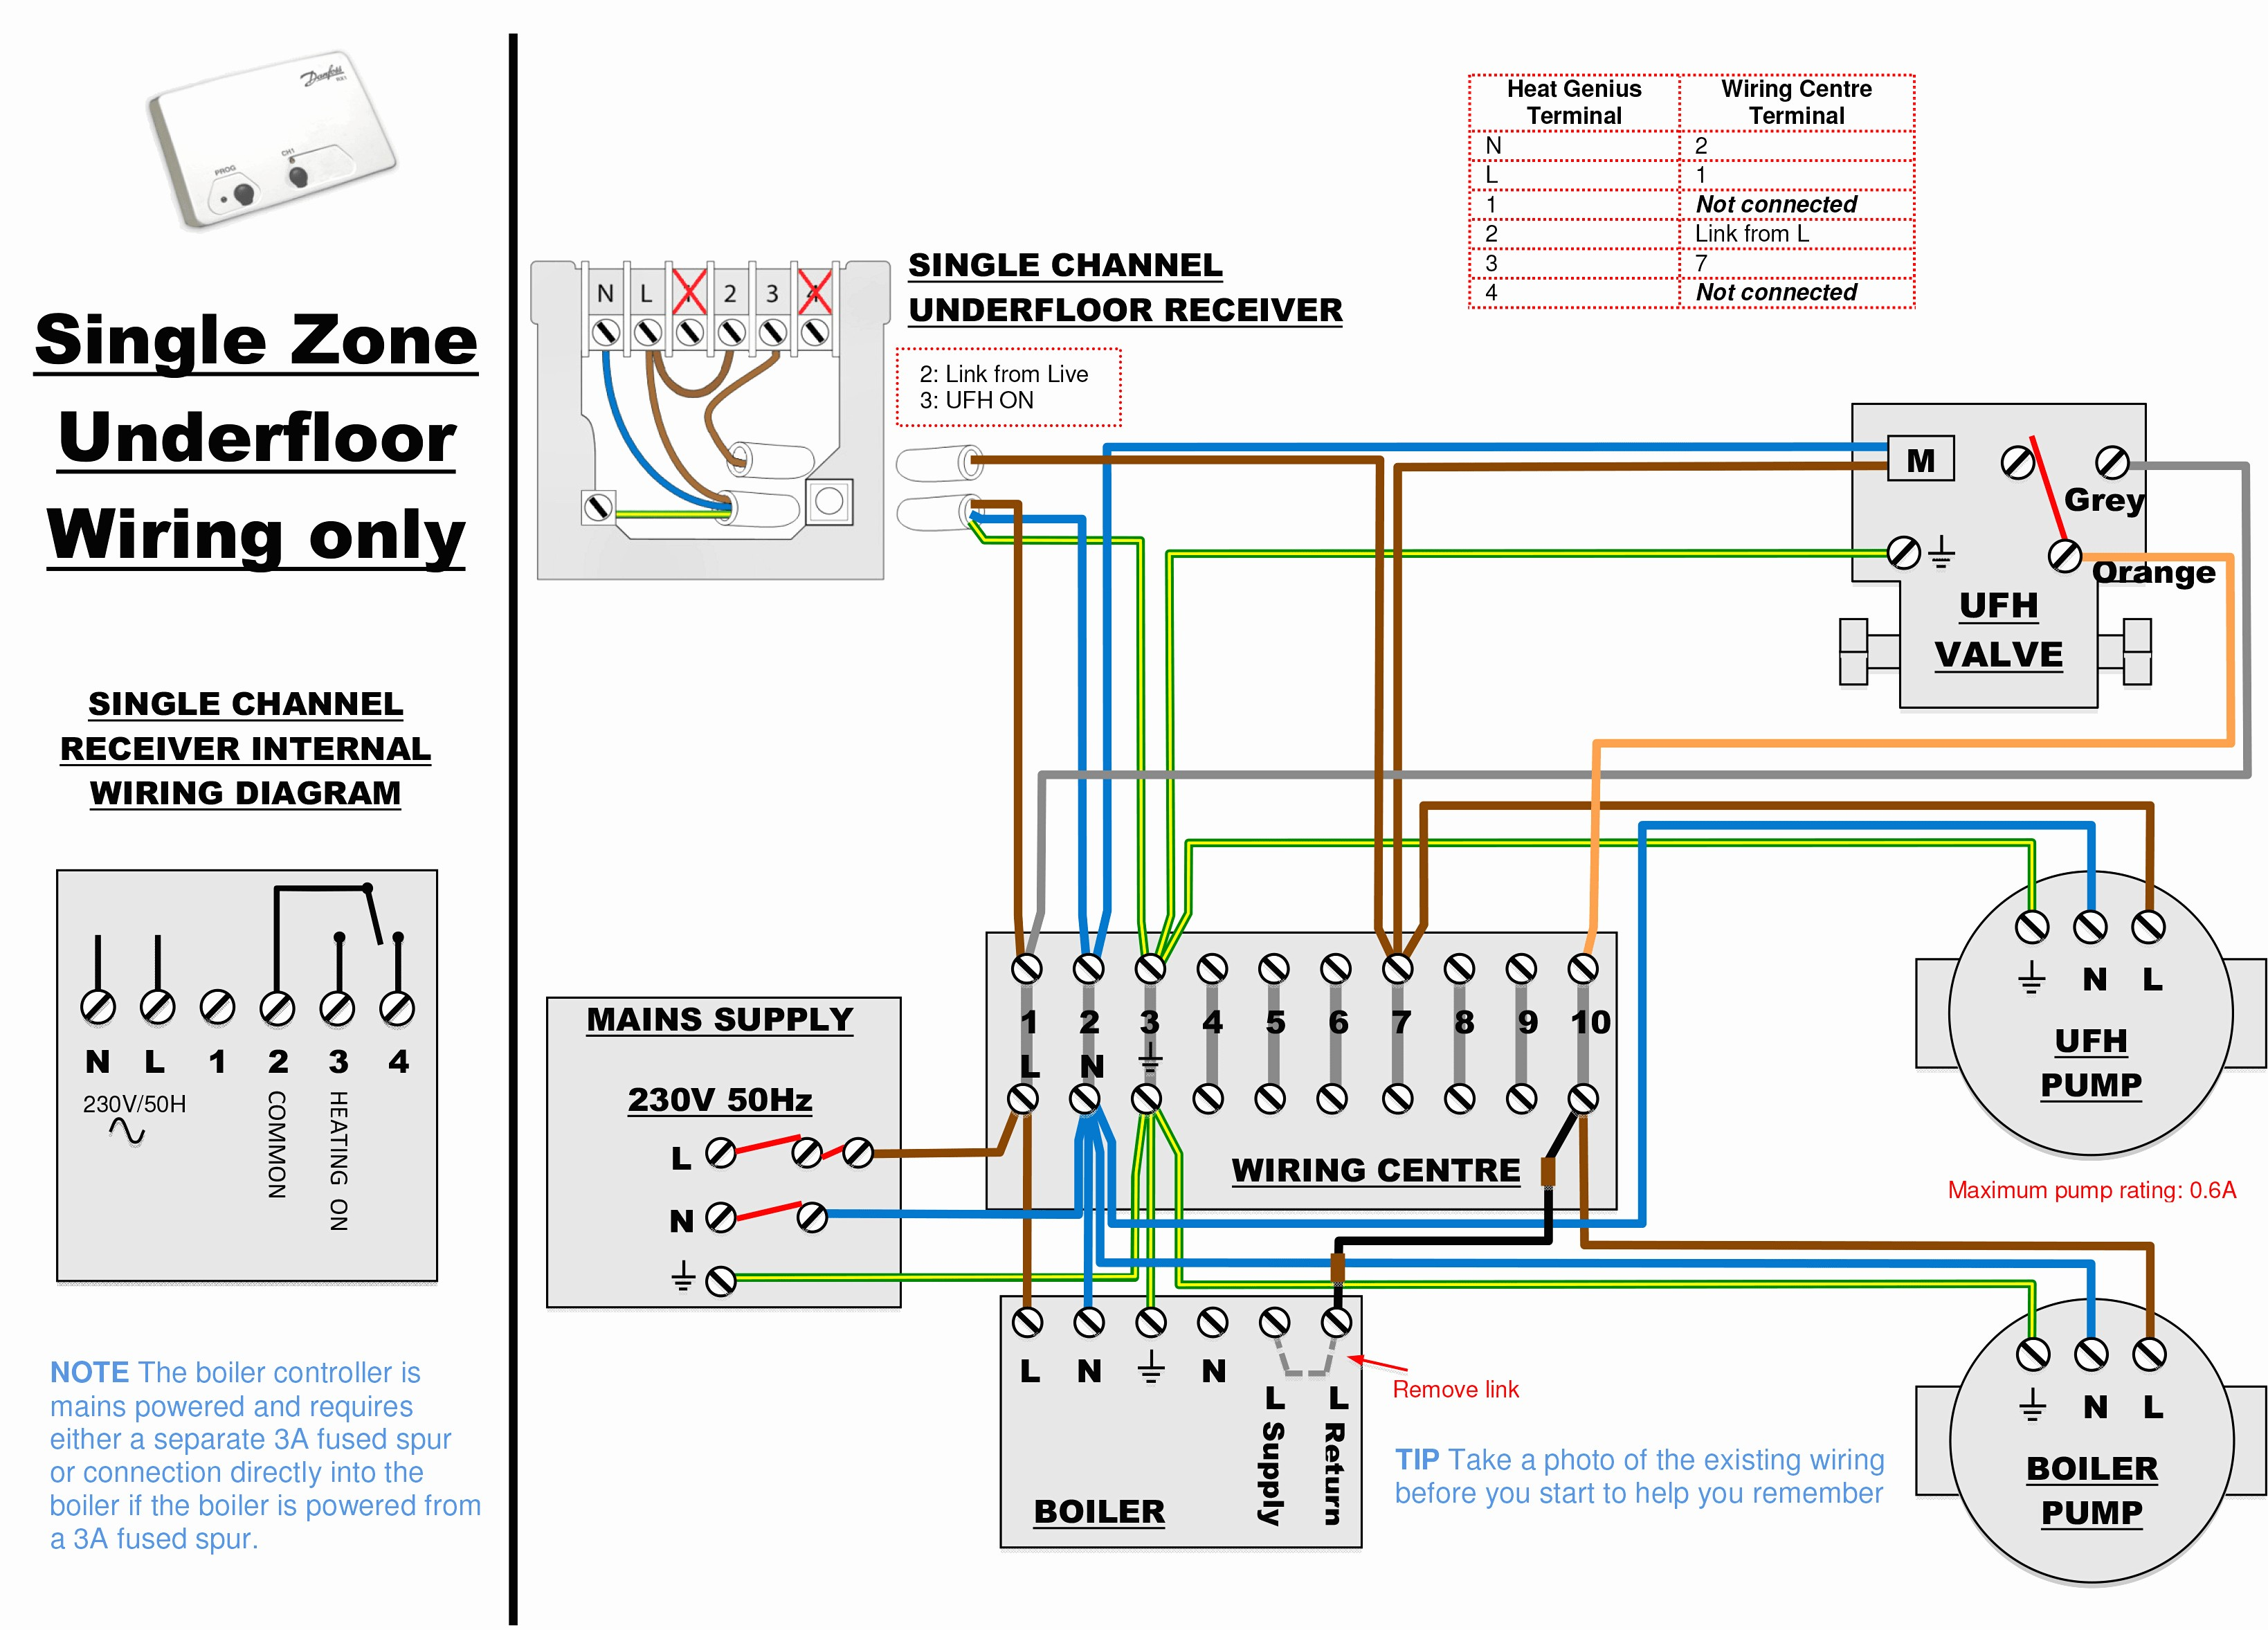 Central Heating Boiler Wiring Diagrams Circuit And Schematics How To Wire Water Heater Thermostat Readingrat Net